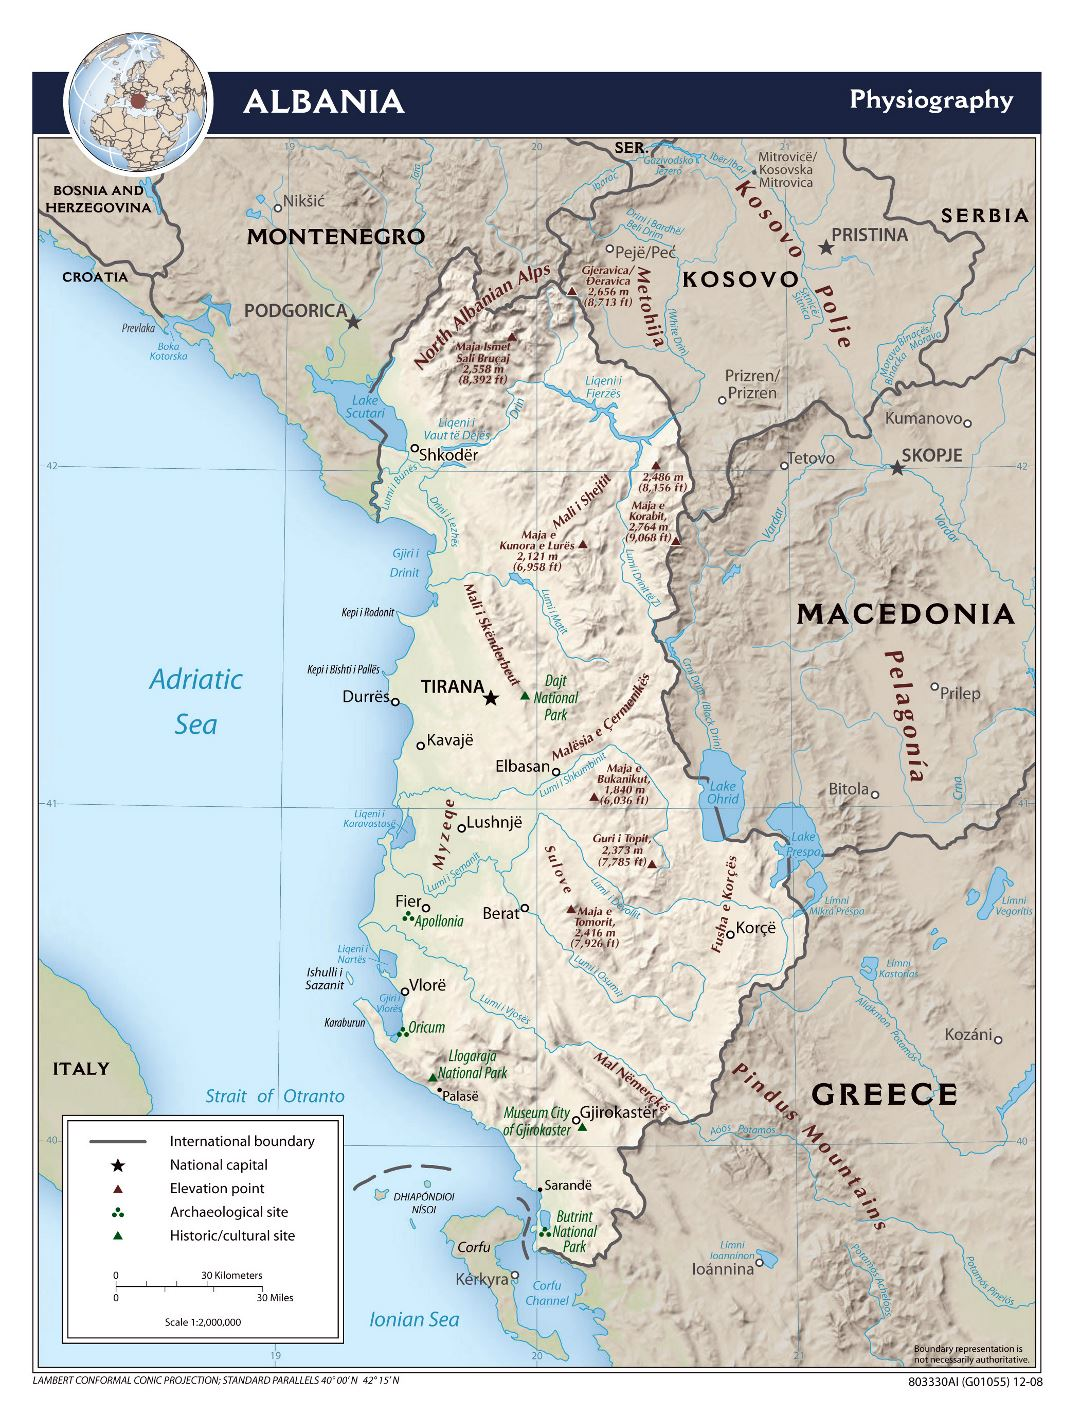 Large scale physiography map of Albania - 2008